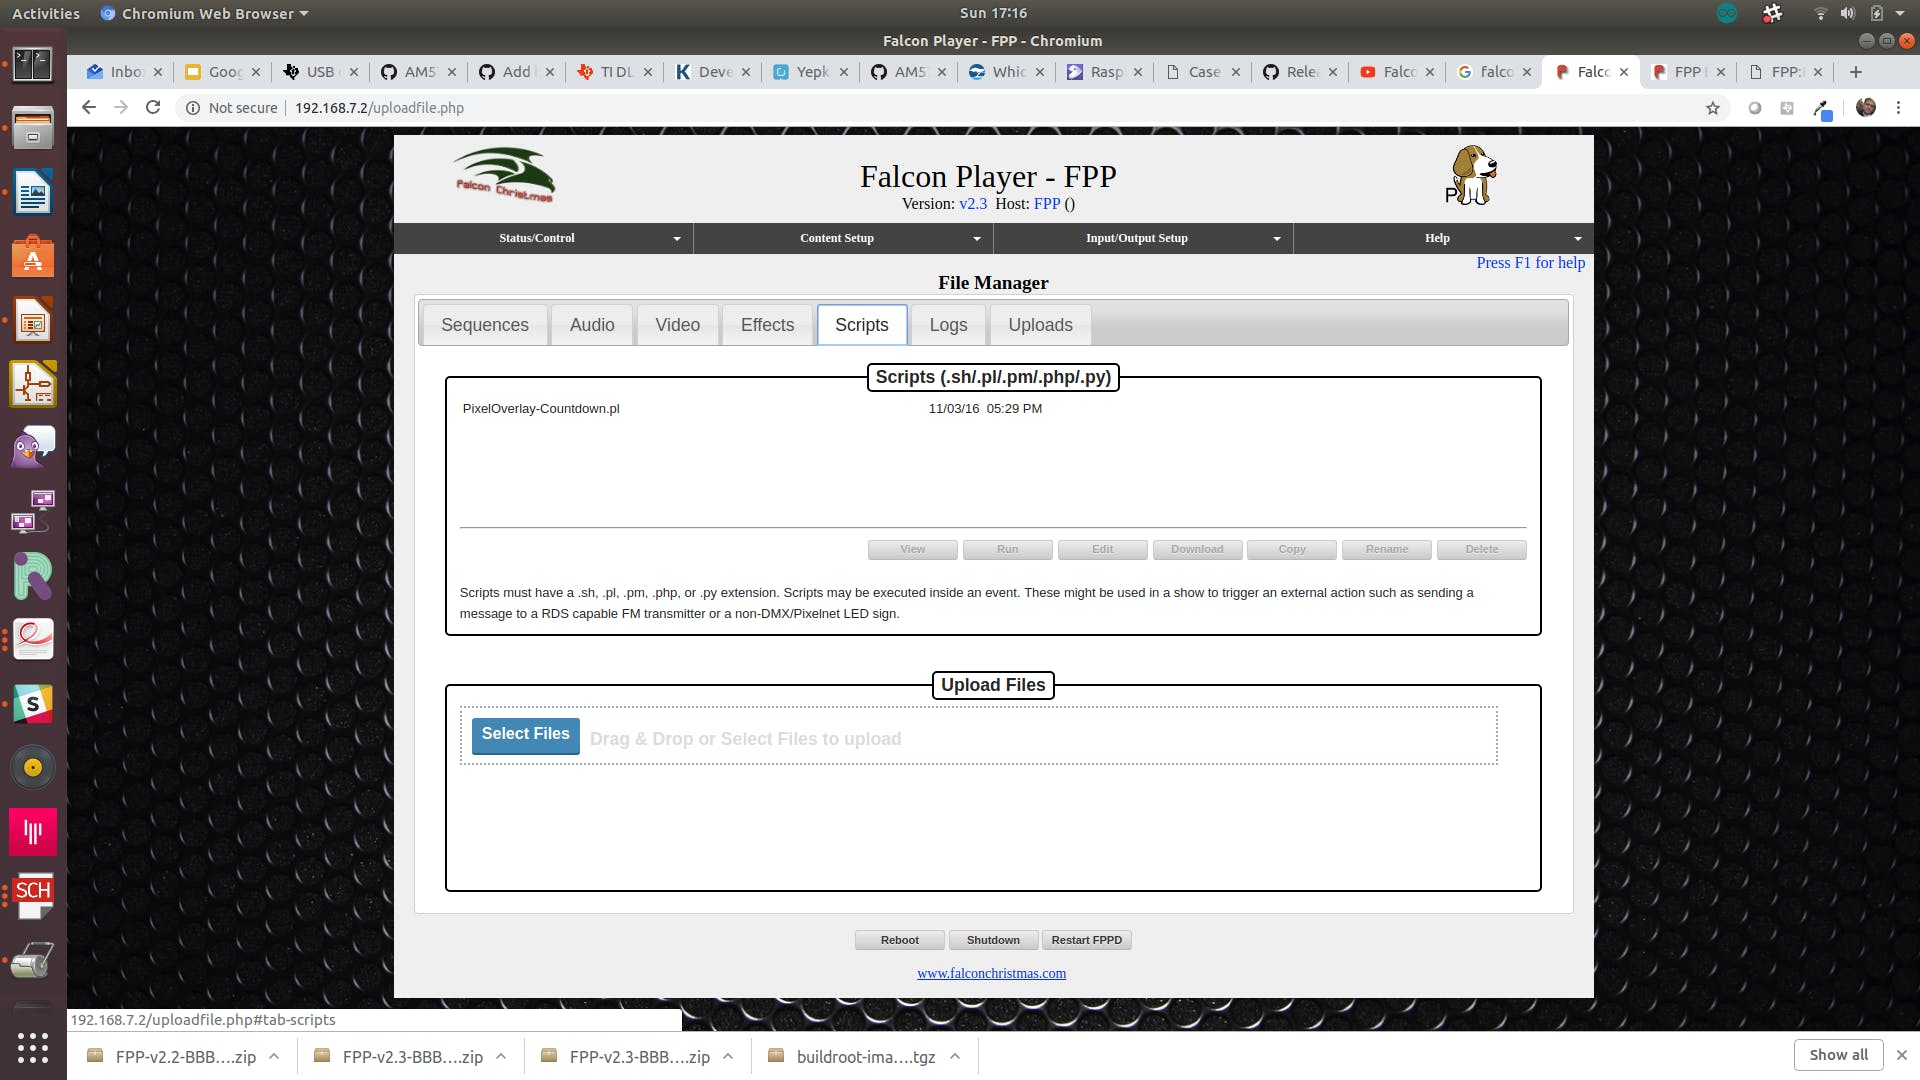 Load the PixelOverlay-Countdown.pl script to the Falcon Player